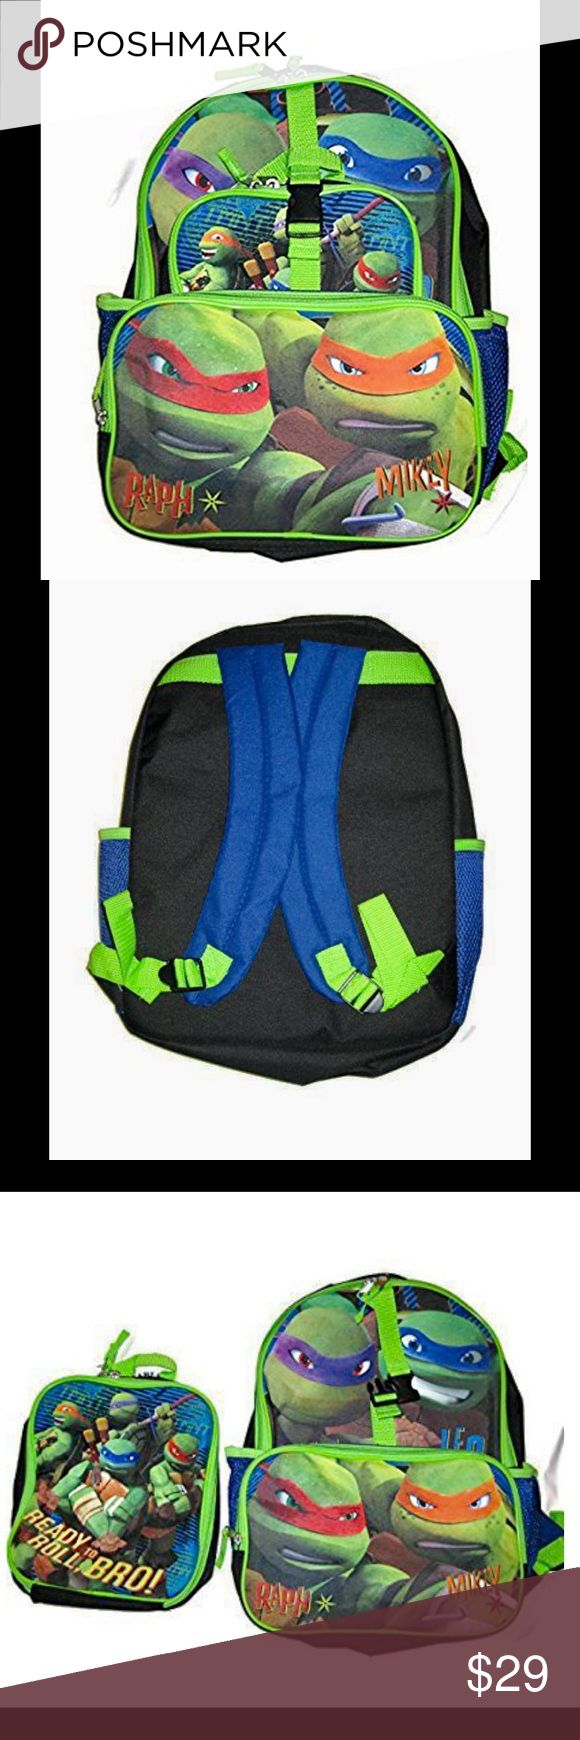 Teenage Mutant Ninja Turtles Backpack Brand New - Teenage Mutant Ninja Turtles Backpack with Detachable Lunch Bag 16 inch backpack with mesh pockets Lunch bag Nickelodeon Accessories Bags